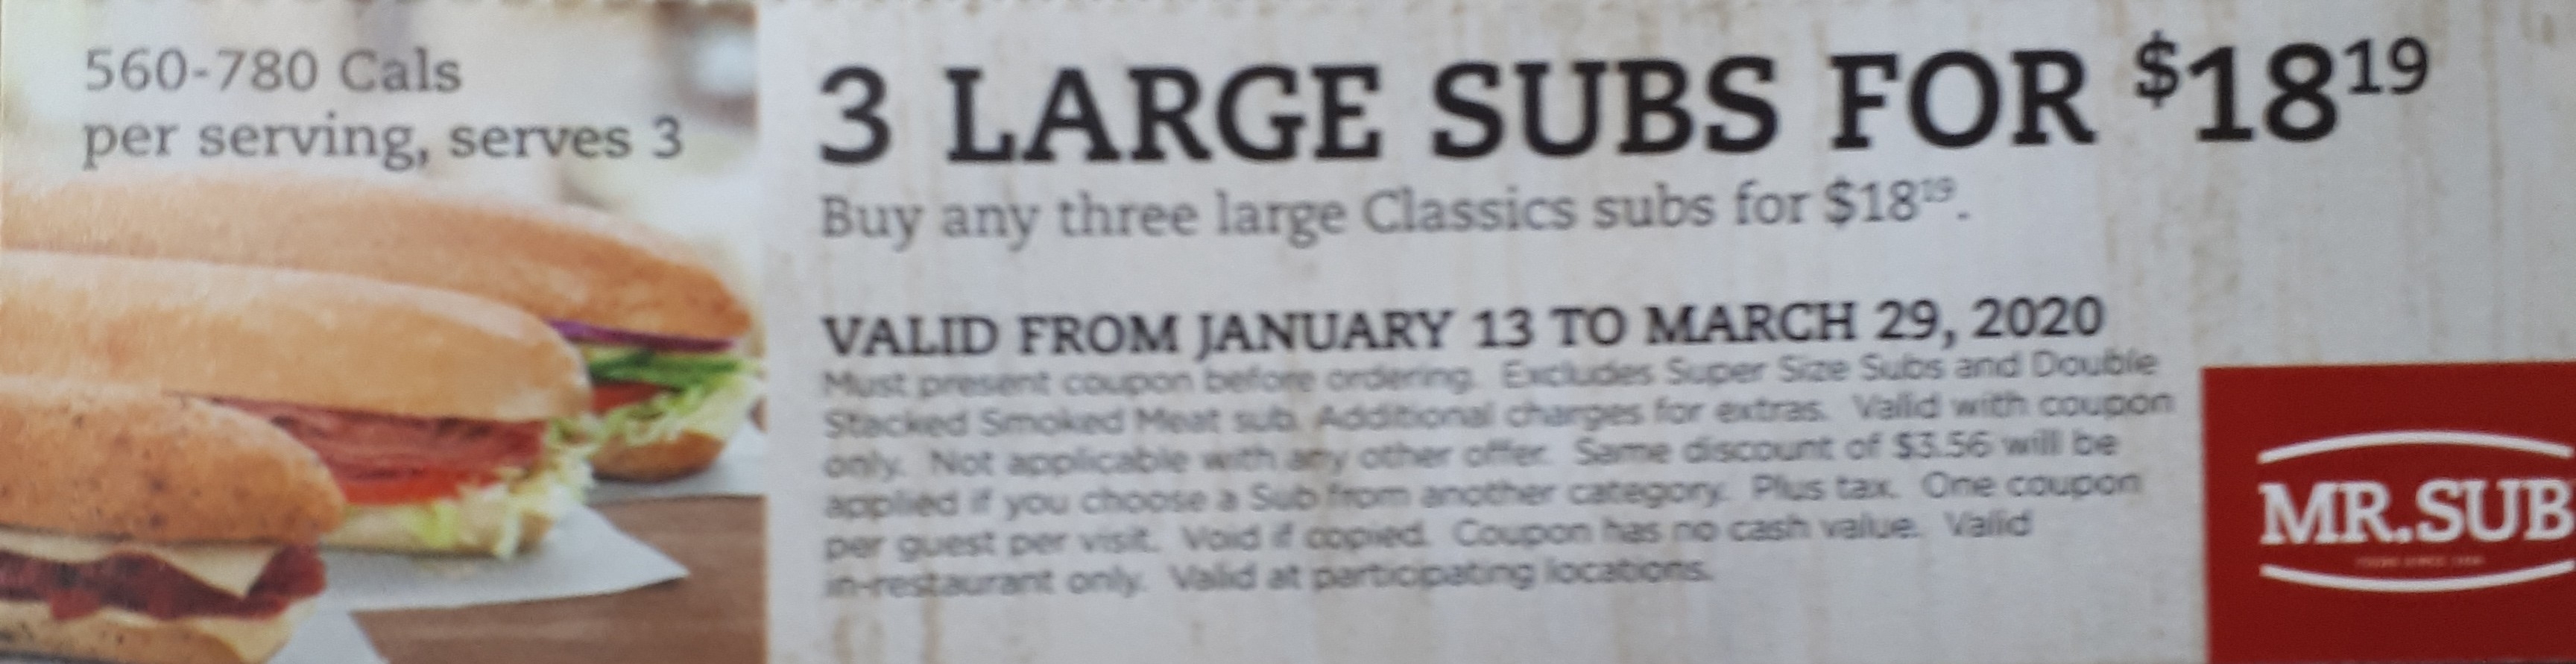 3 Large Subs for $18.19